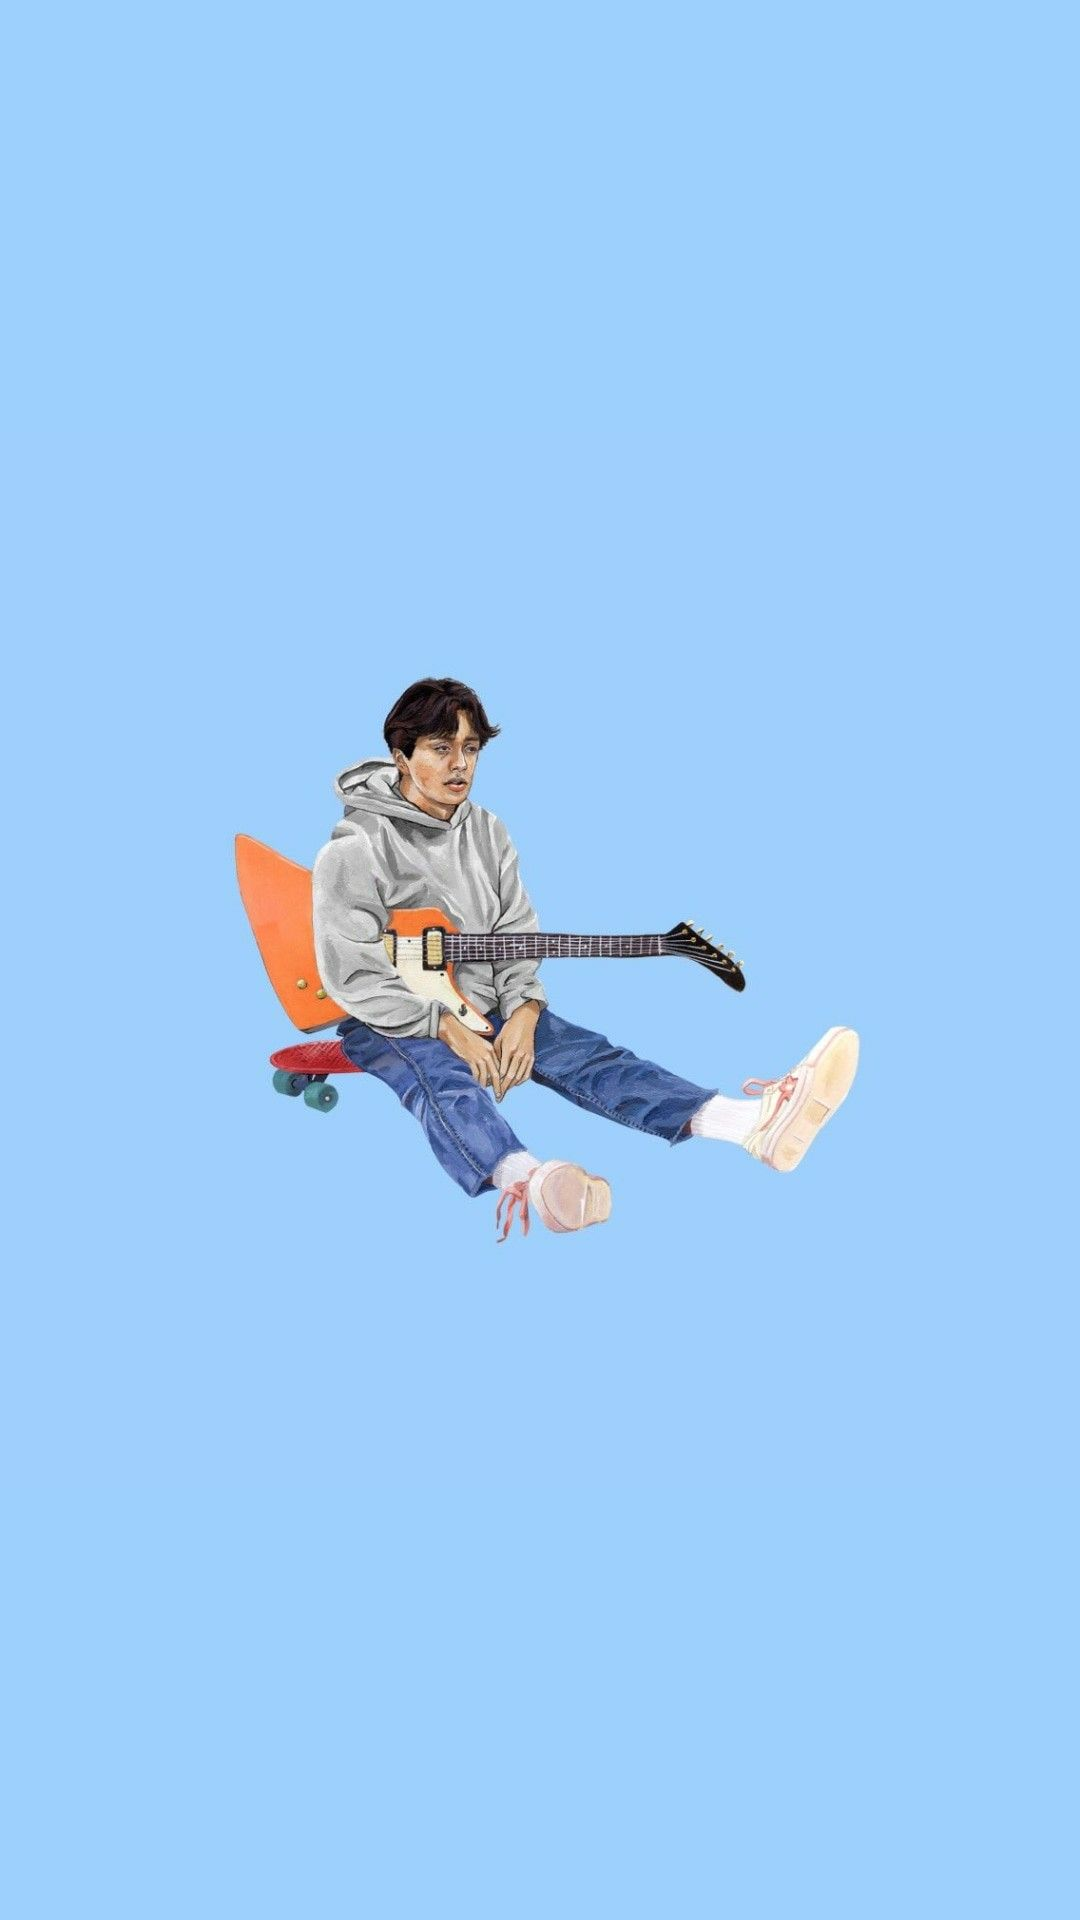 Ayee Ive Been Loving Boy Pablo S New Album Soy Pablo Music Artists Indie Music Poster Music Album Cover